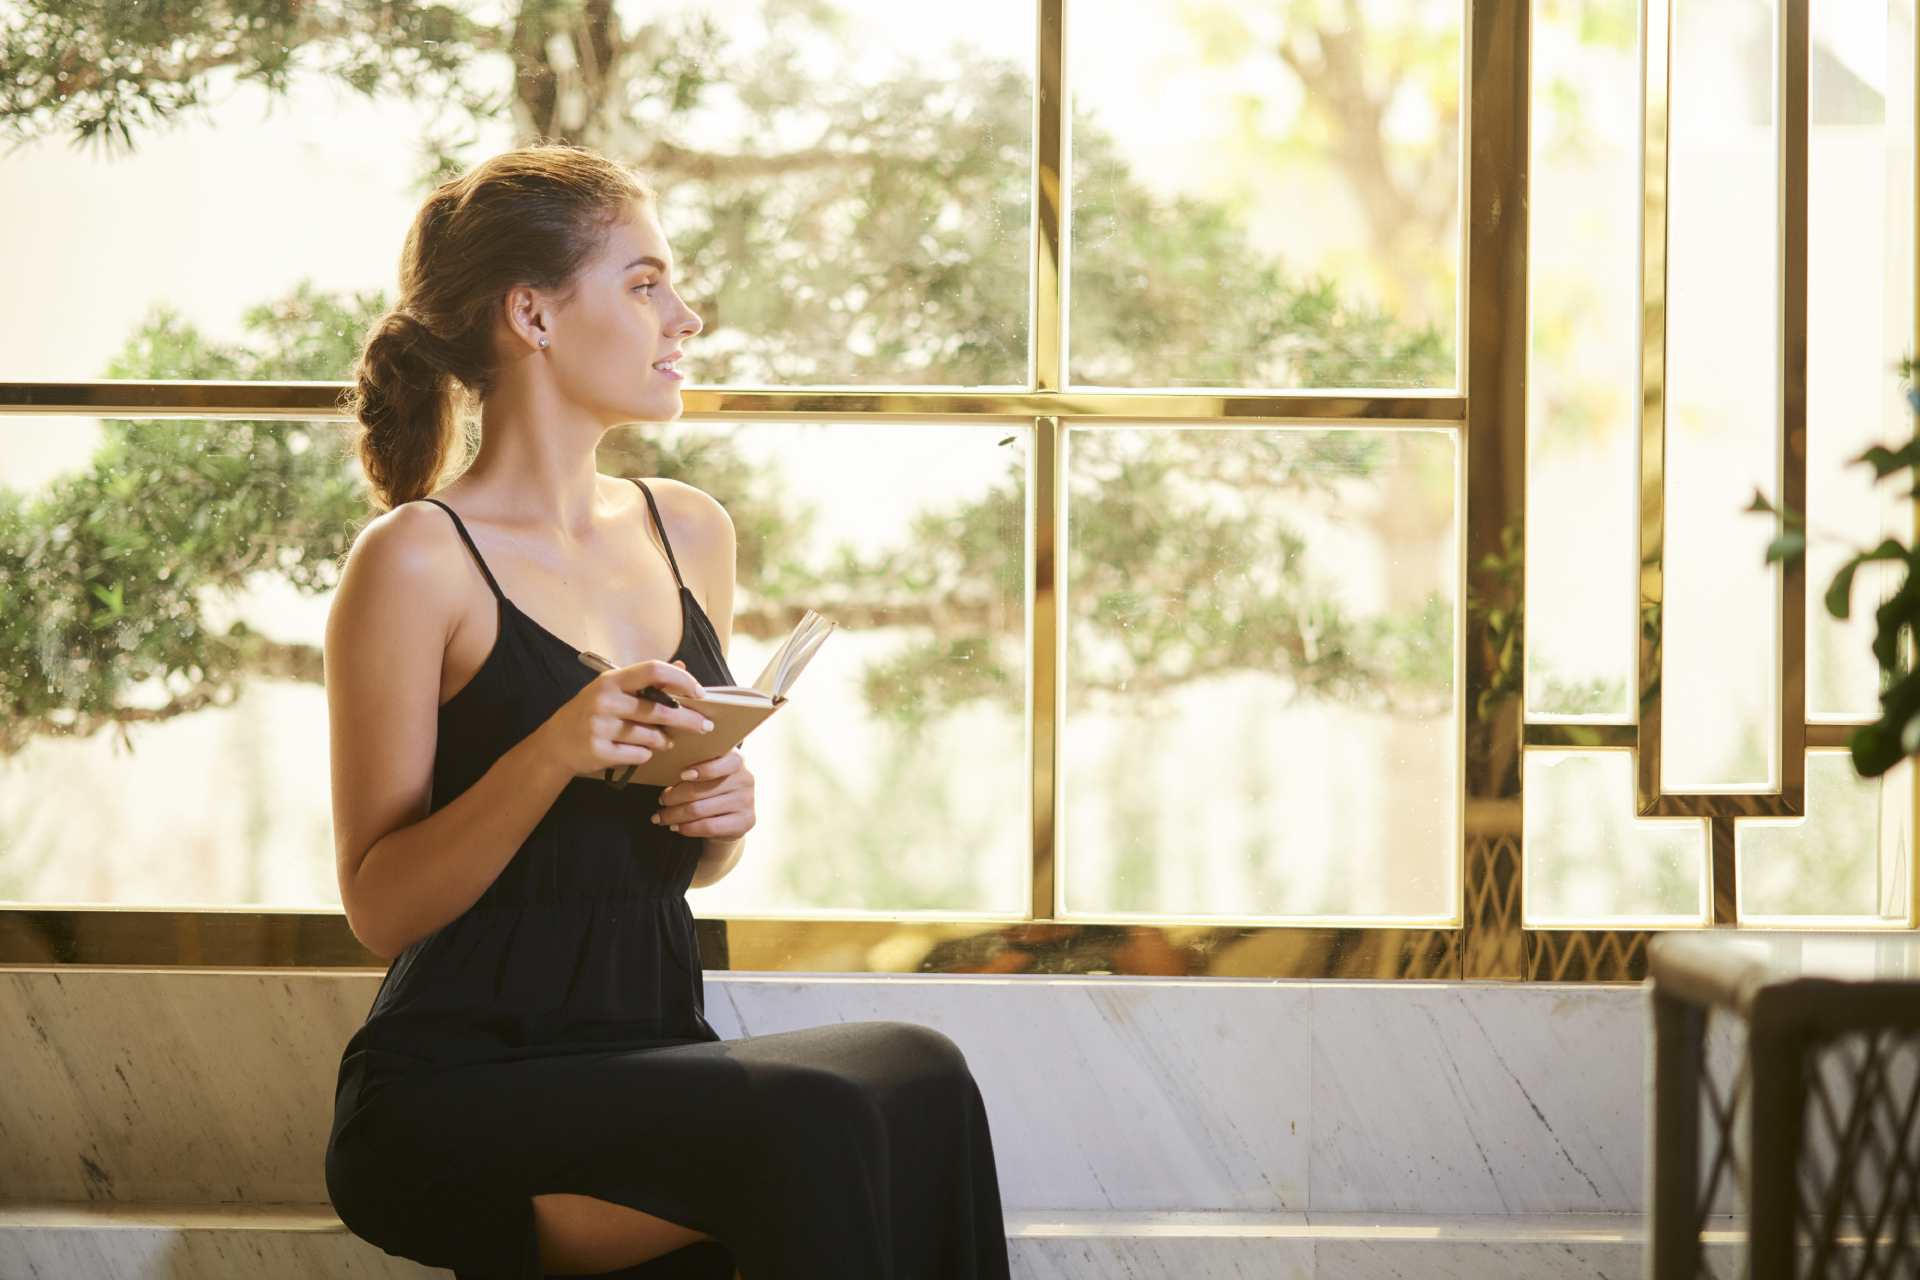 inspired-woman-sitting-at-window